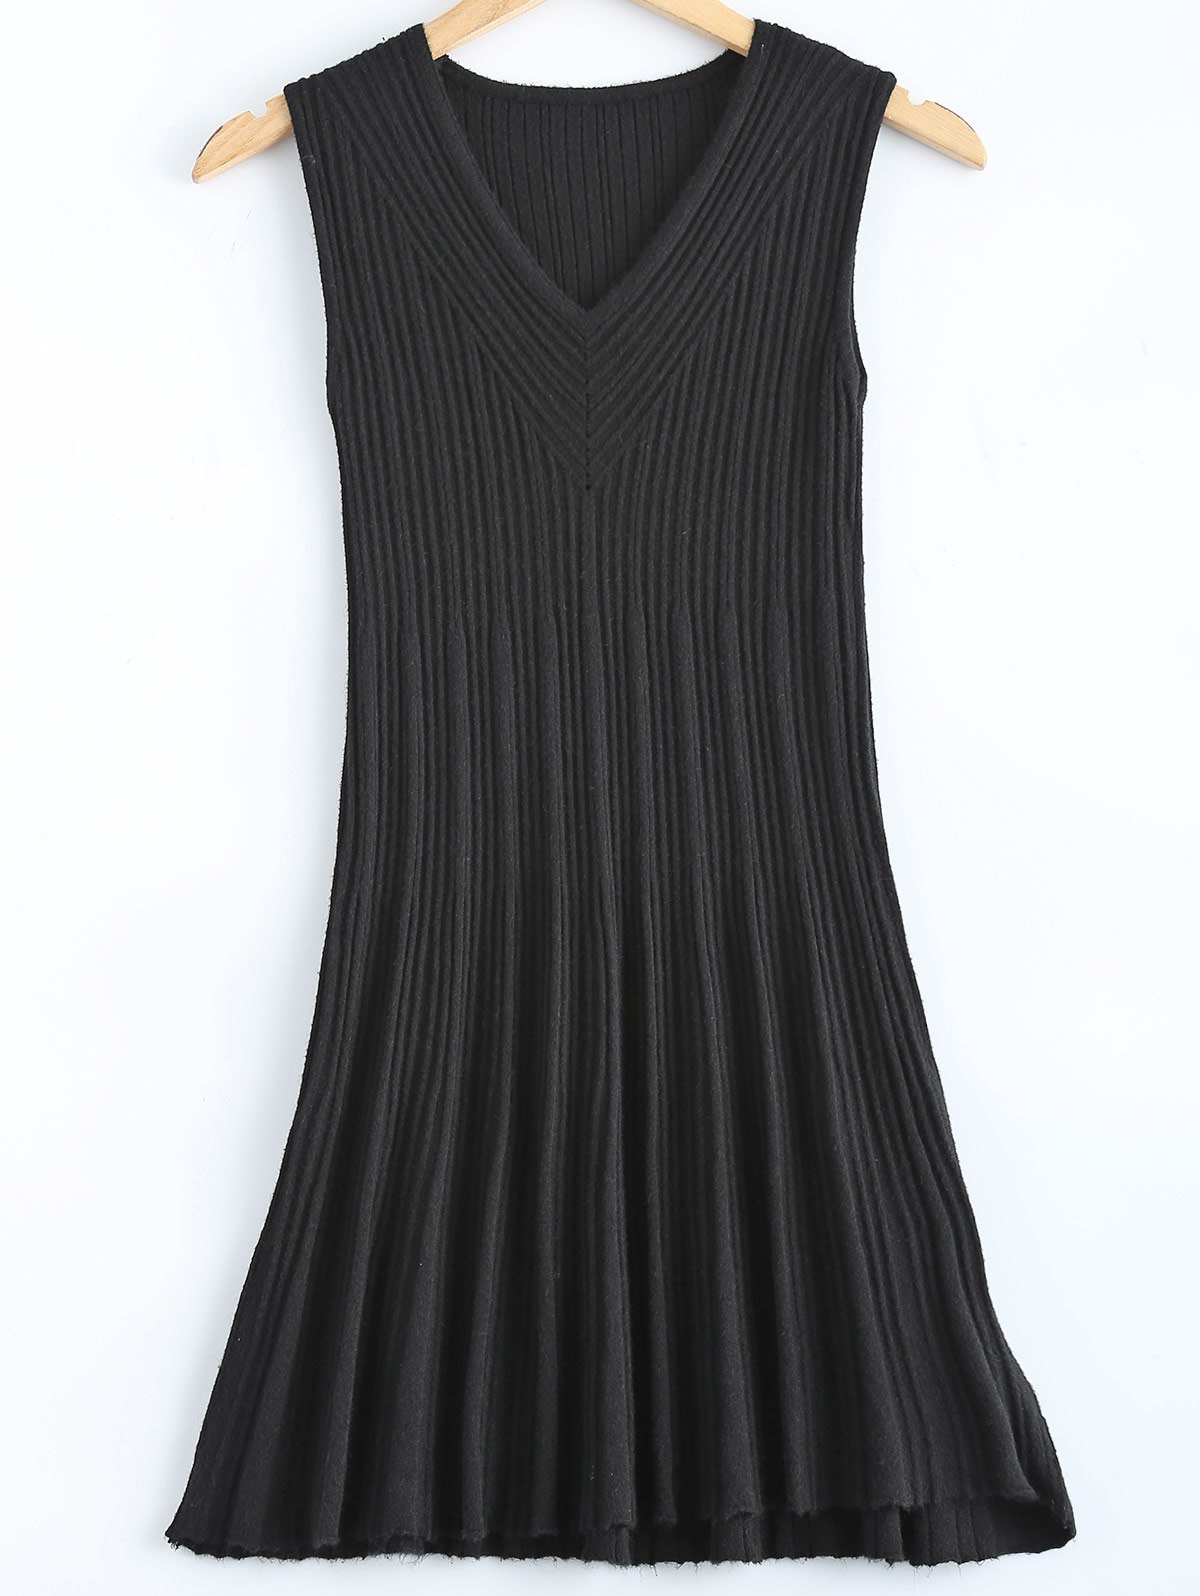 Ribbed V-Neck Knitted Sleeveless Dress веб камера a4tech pk 836f